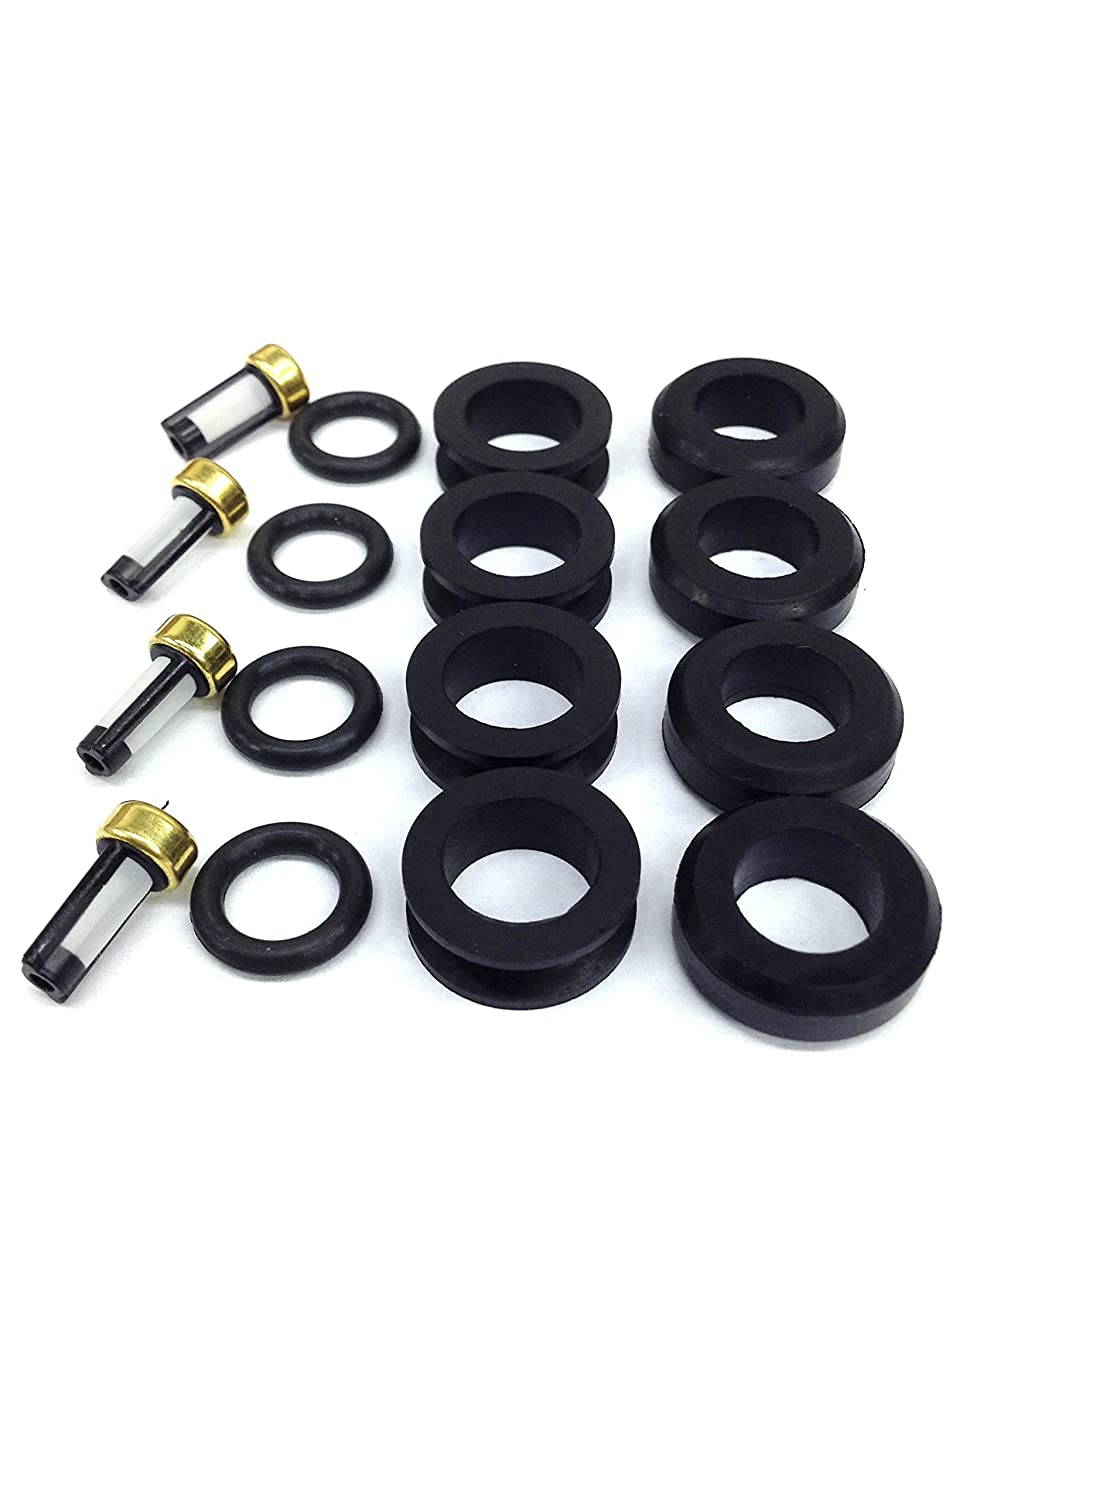 UREMCO 10-4 Fuel Injector Seal Kit, 1 Pack